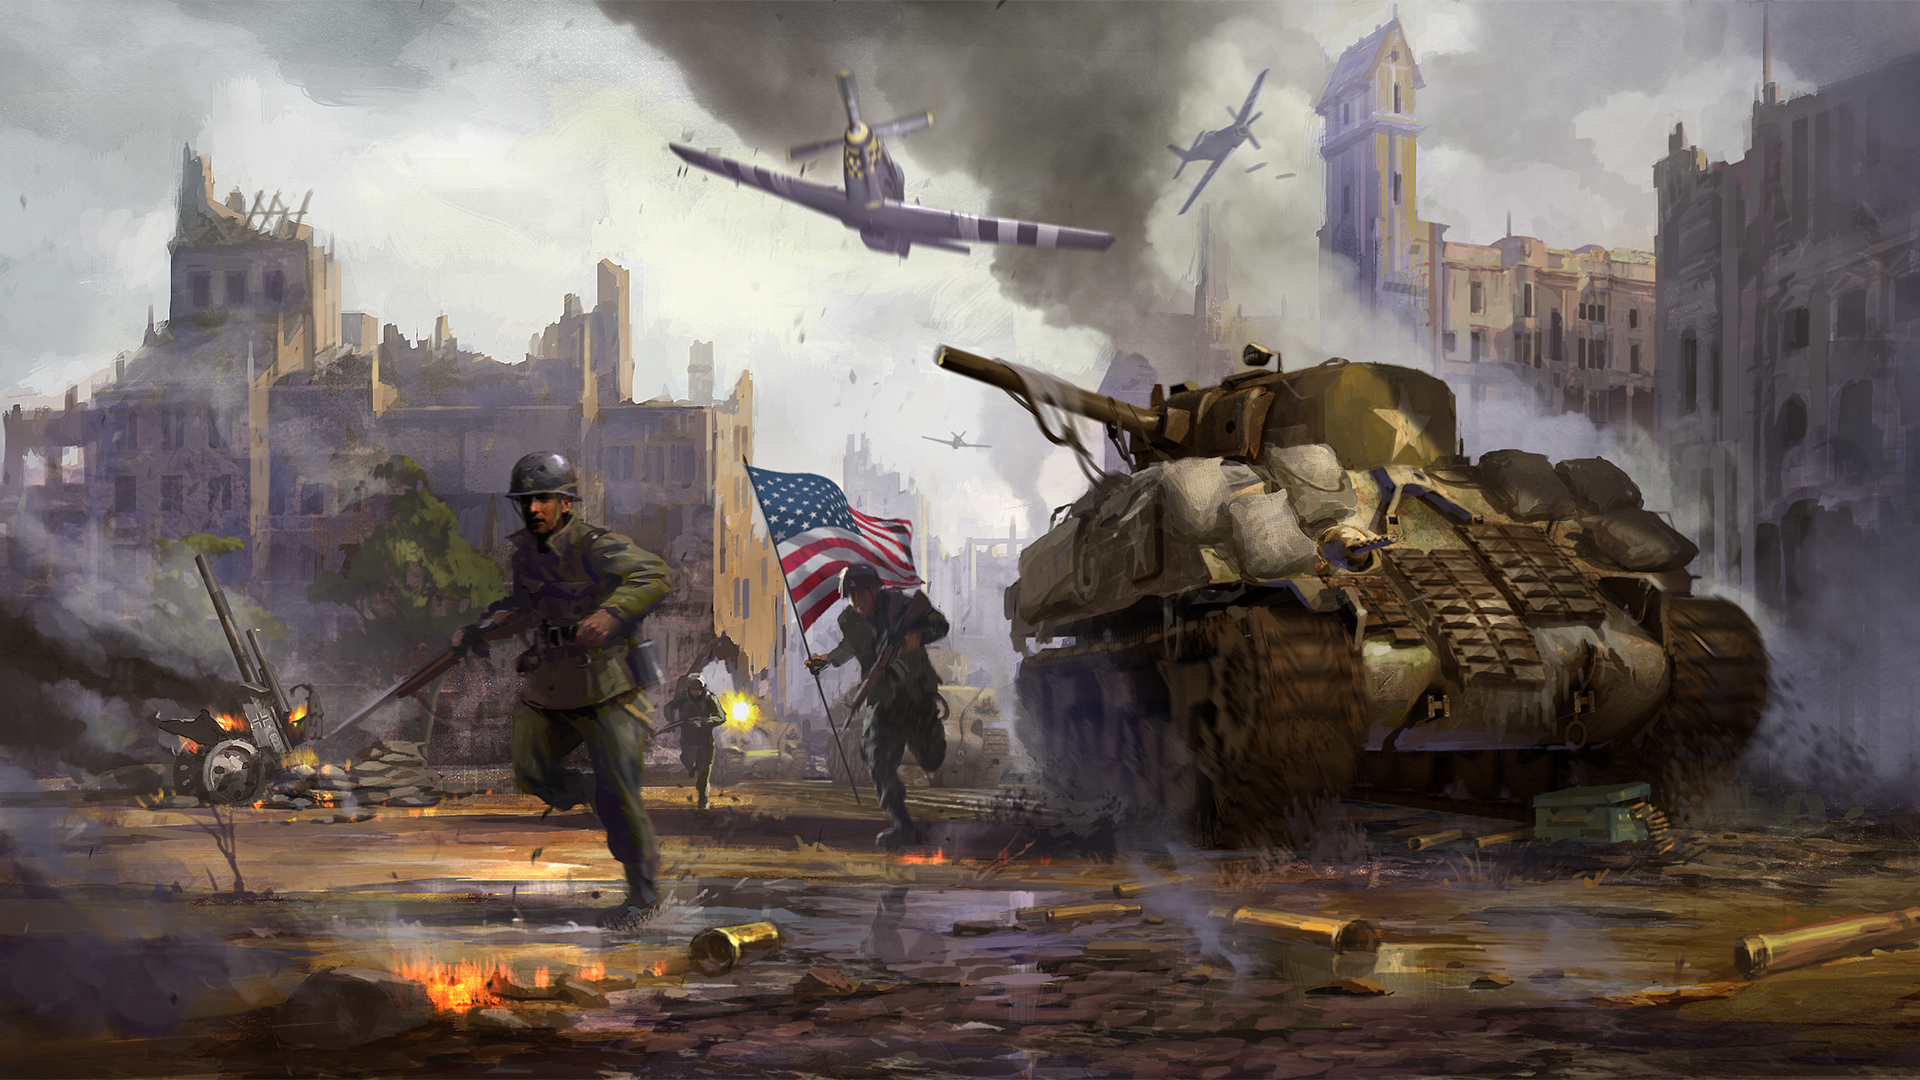 48 ww2 wallpaper screensavers on wallpapersafari - World war 2 desktop wallpaper ...